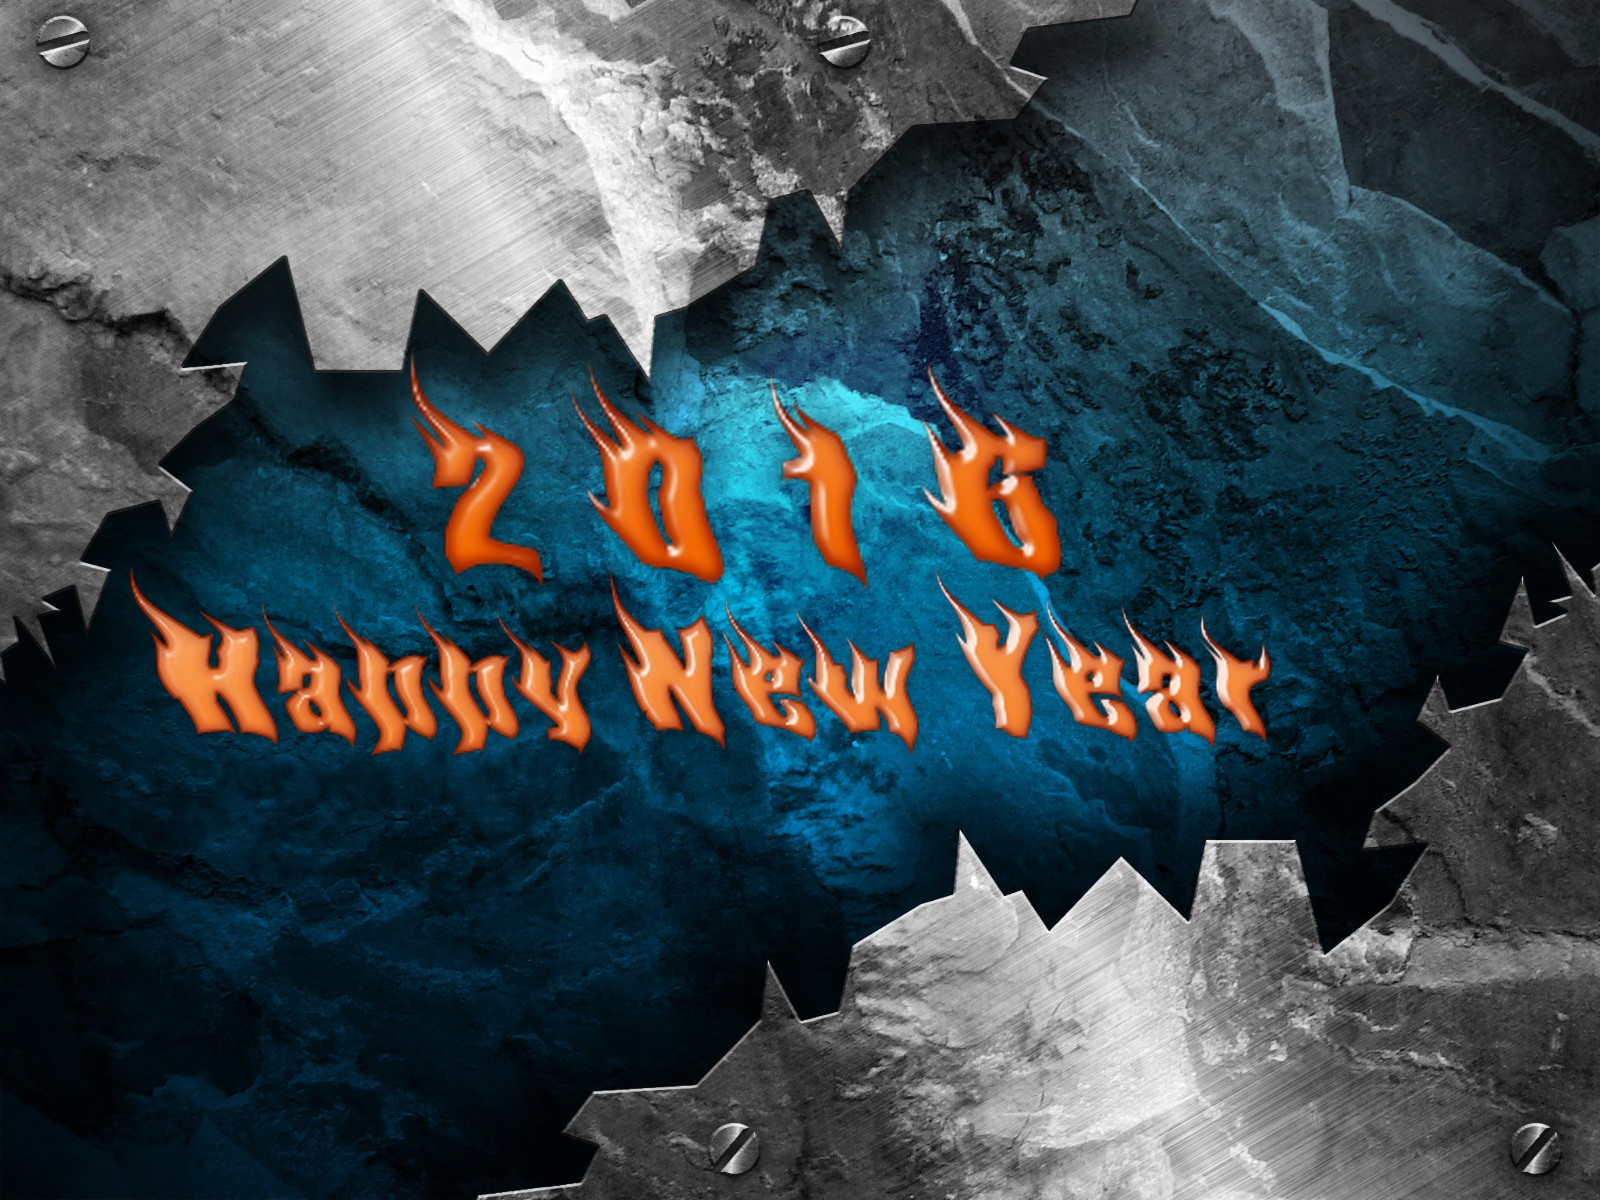 WelCome New Year 2016 HD Wallpaper   New HD Wallpapers 1600x1200